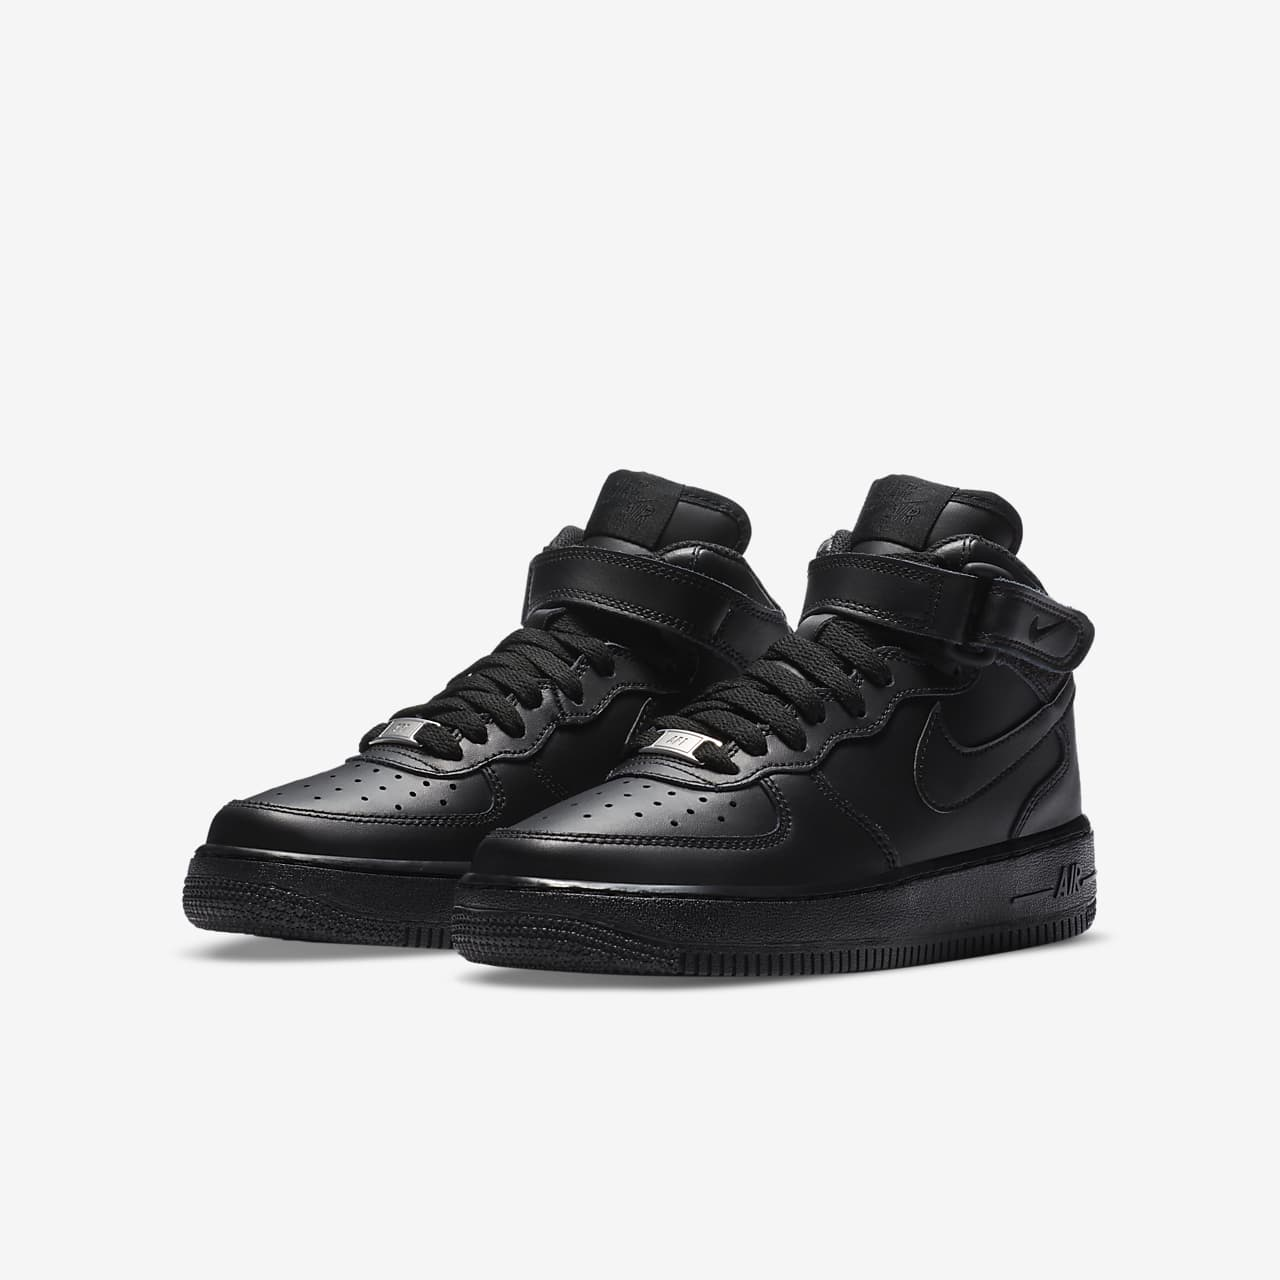 the best attitude 186ba a6d91 ... Chaussure Nike Air Force 1 06 mi-montante pour Gar ccedil on